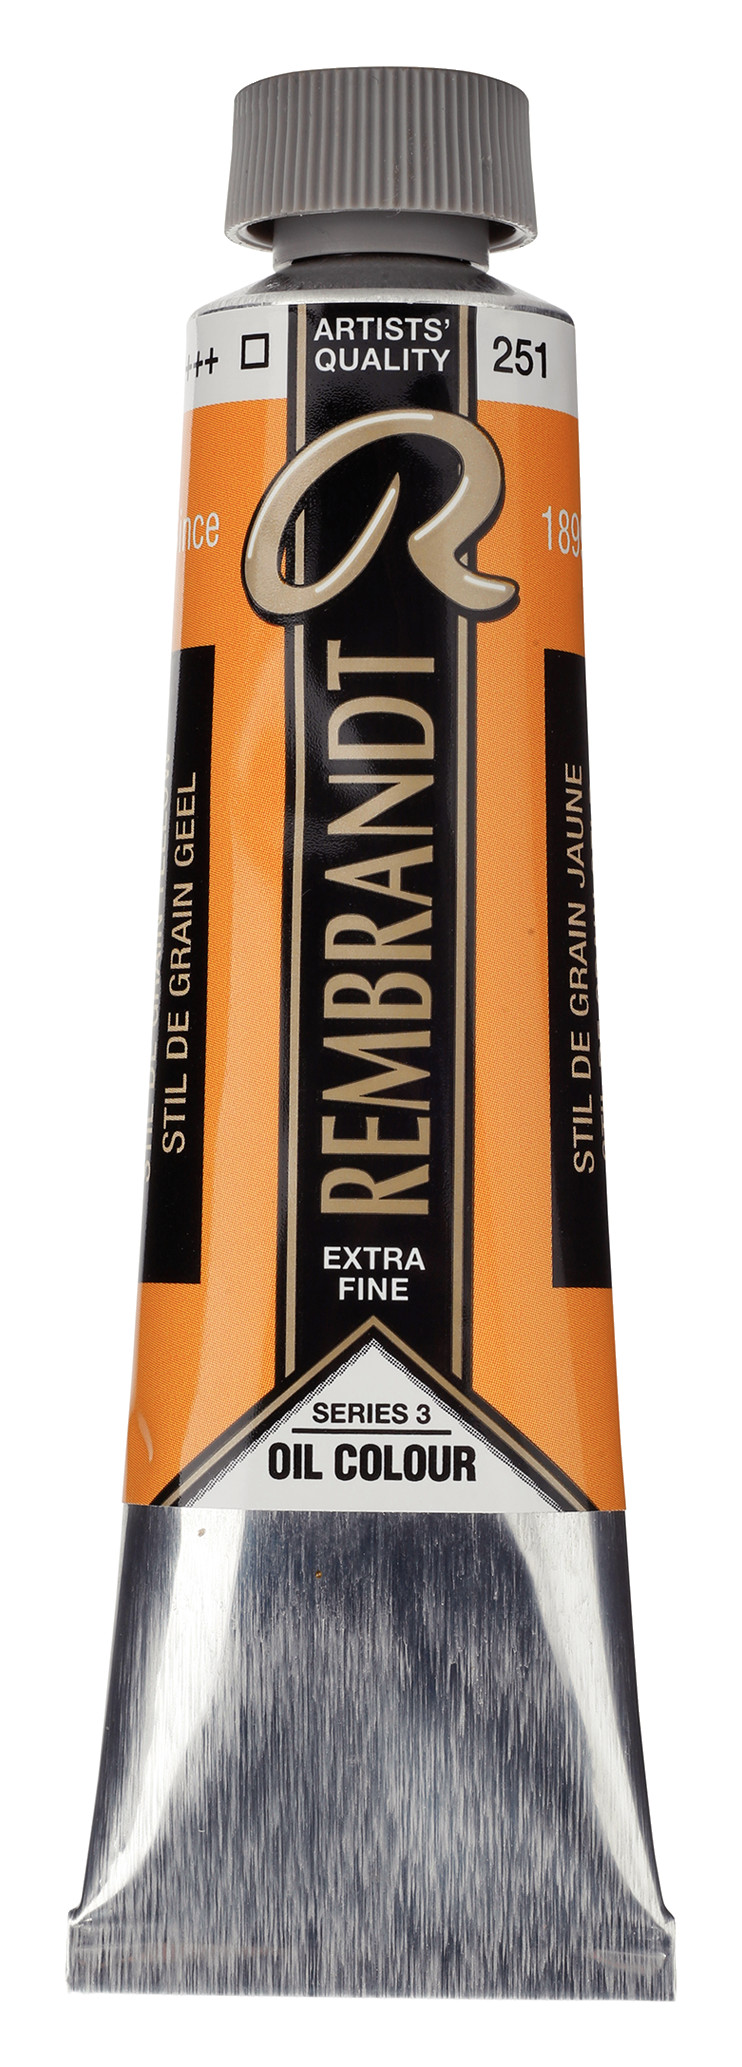 Rembrandt Oil colour Paint Stil de Grain Yellow (251) 40ml Tube